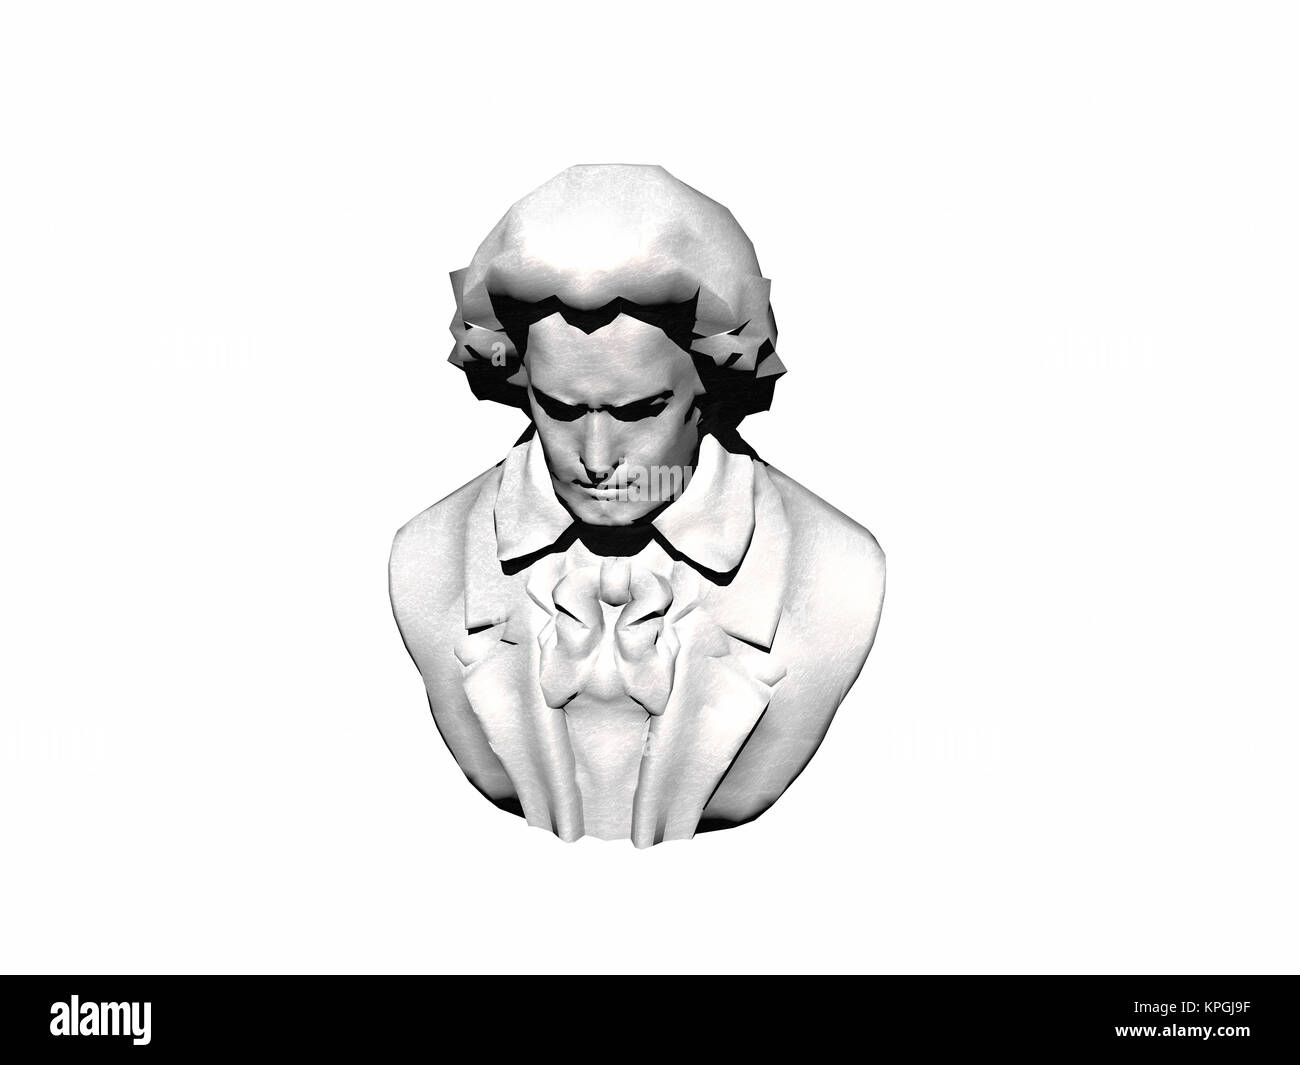 exempted beethoven bust - Stock Image